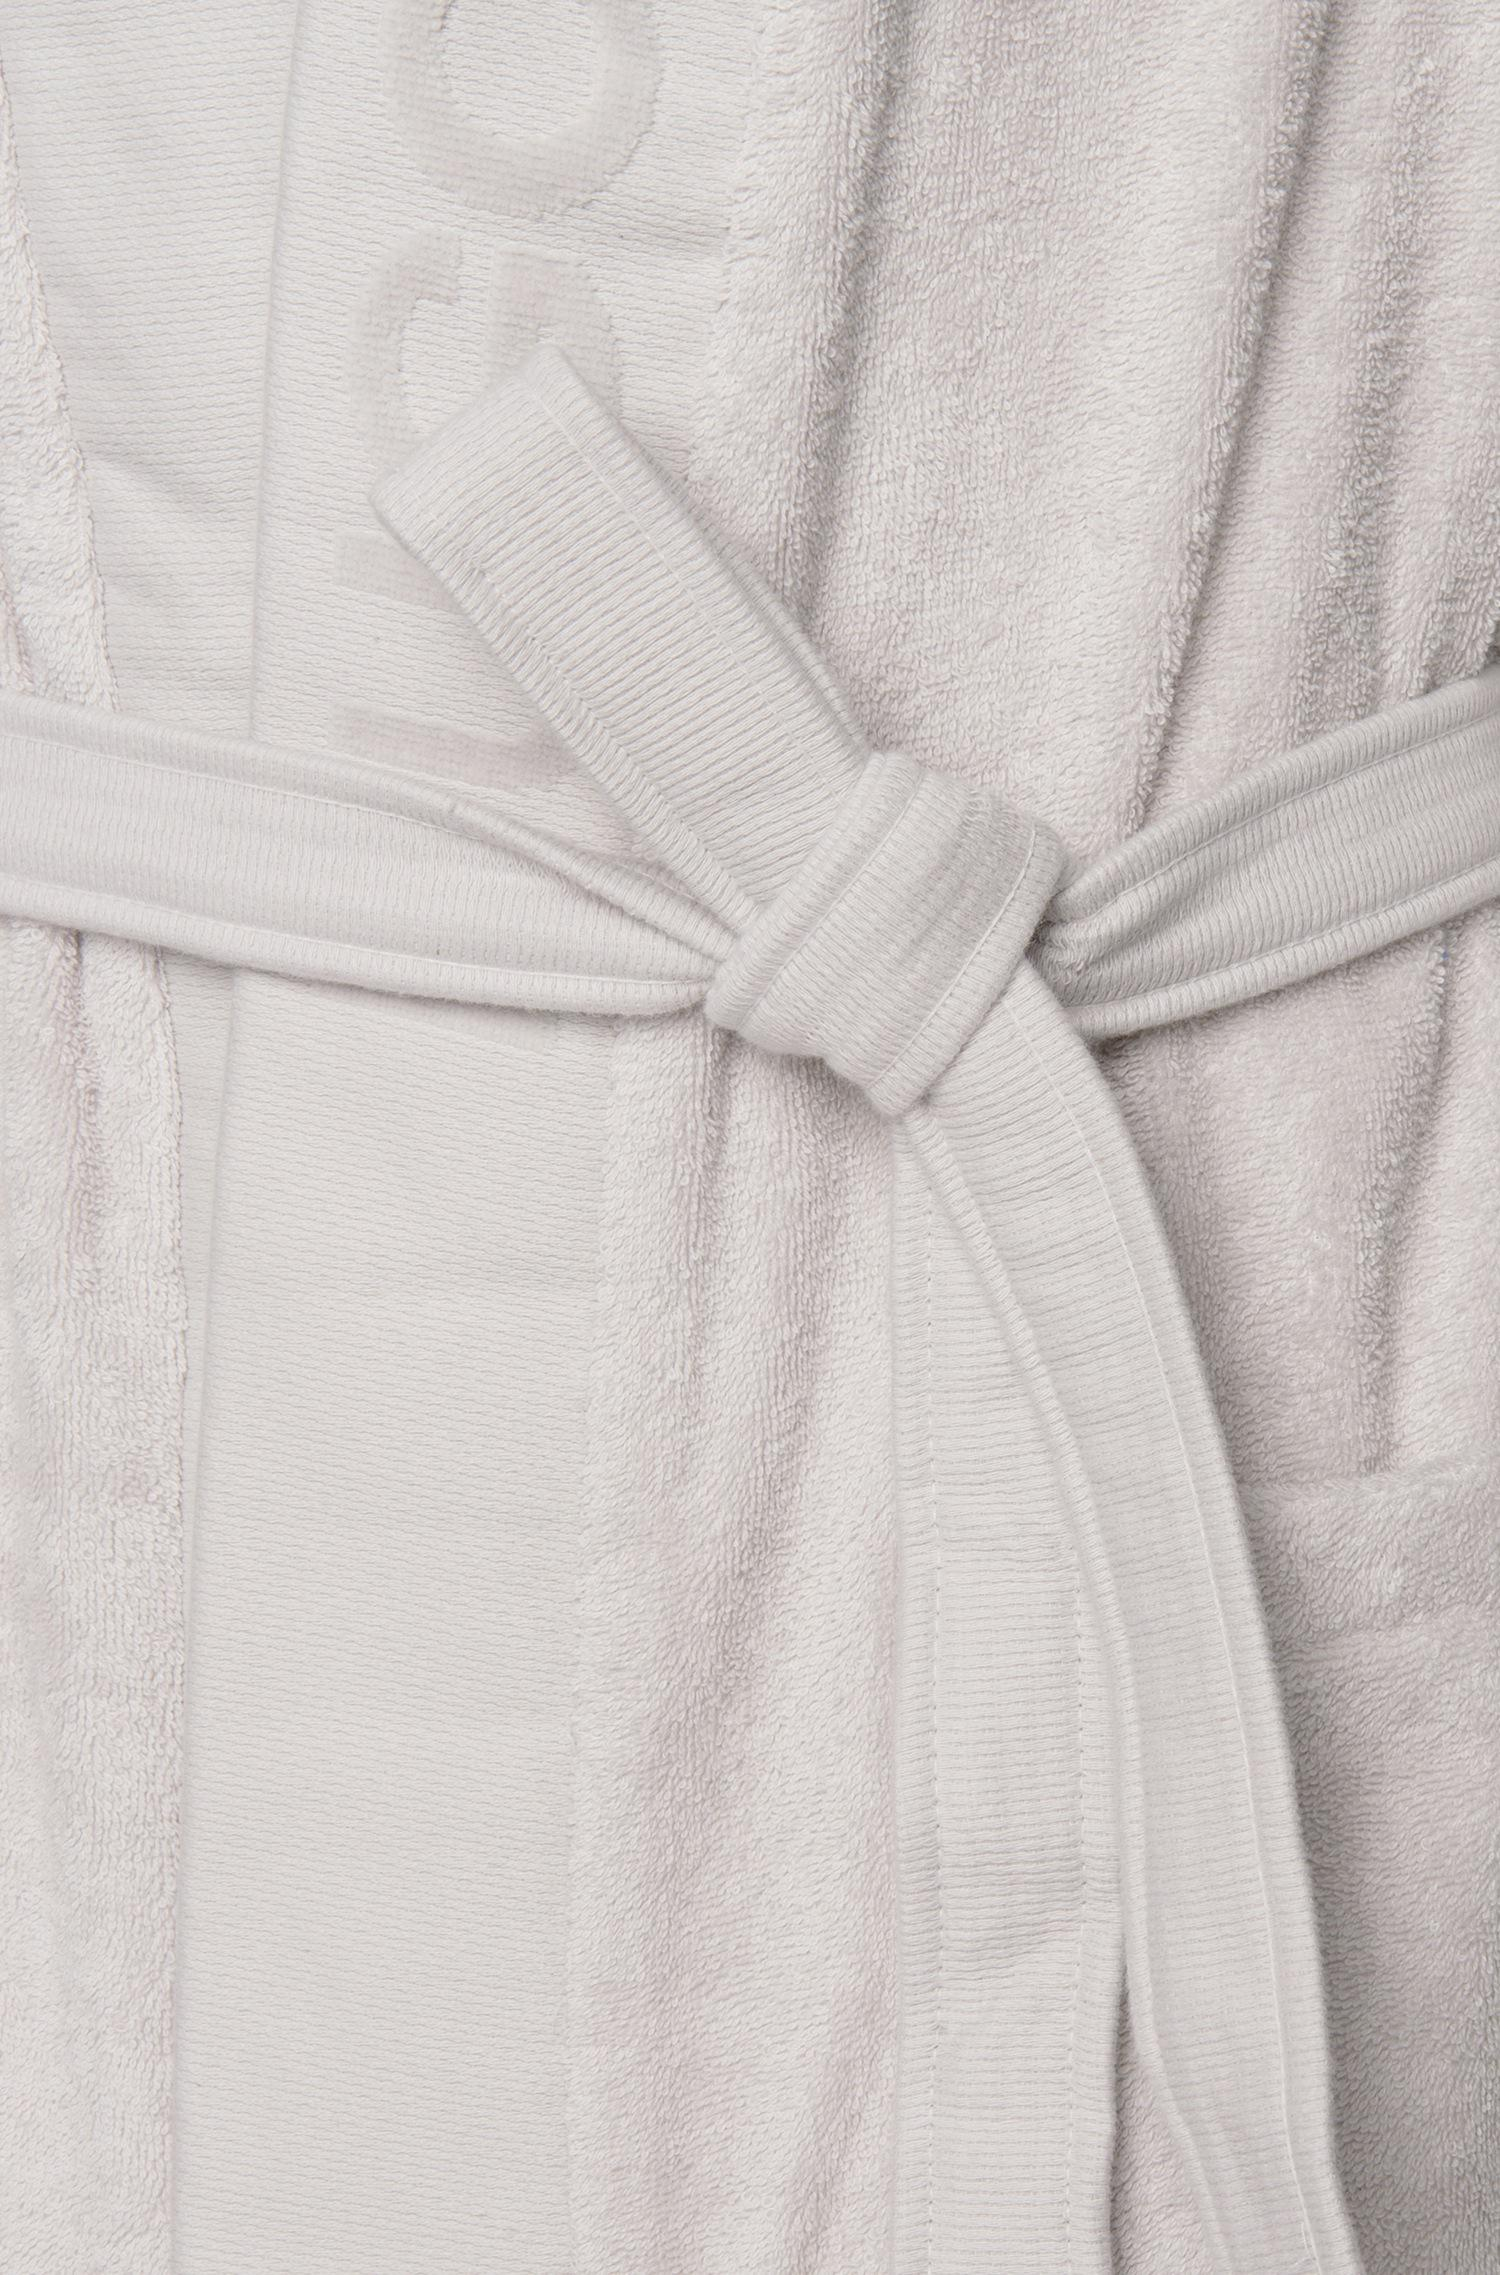 Boss Hooded Dressing Gown In Egyptian Cotton in Metallic for Men - Lyst